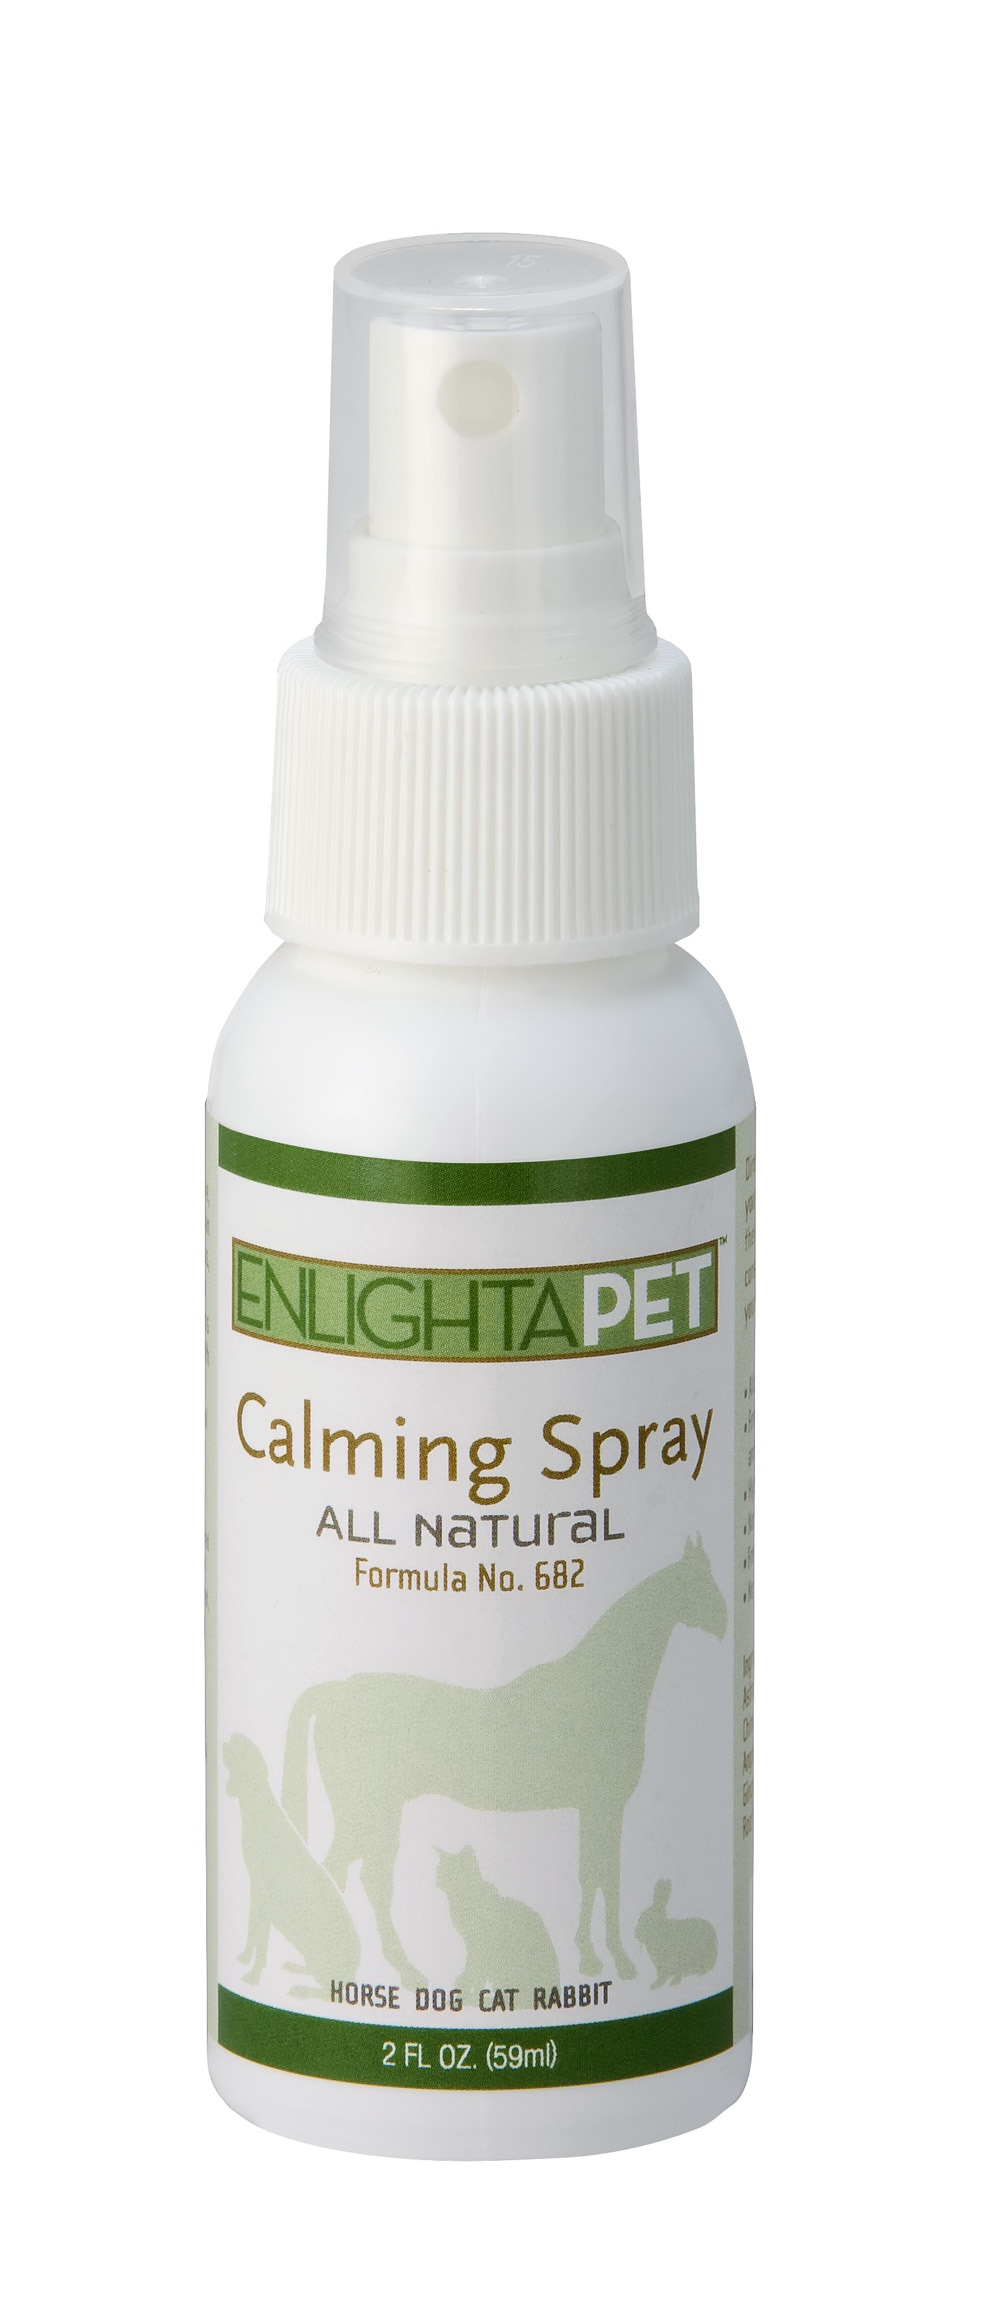 EnlightaPet Calming Spray, 2 oz